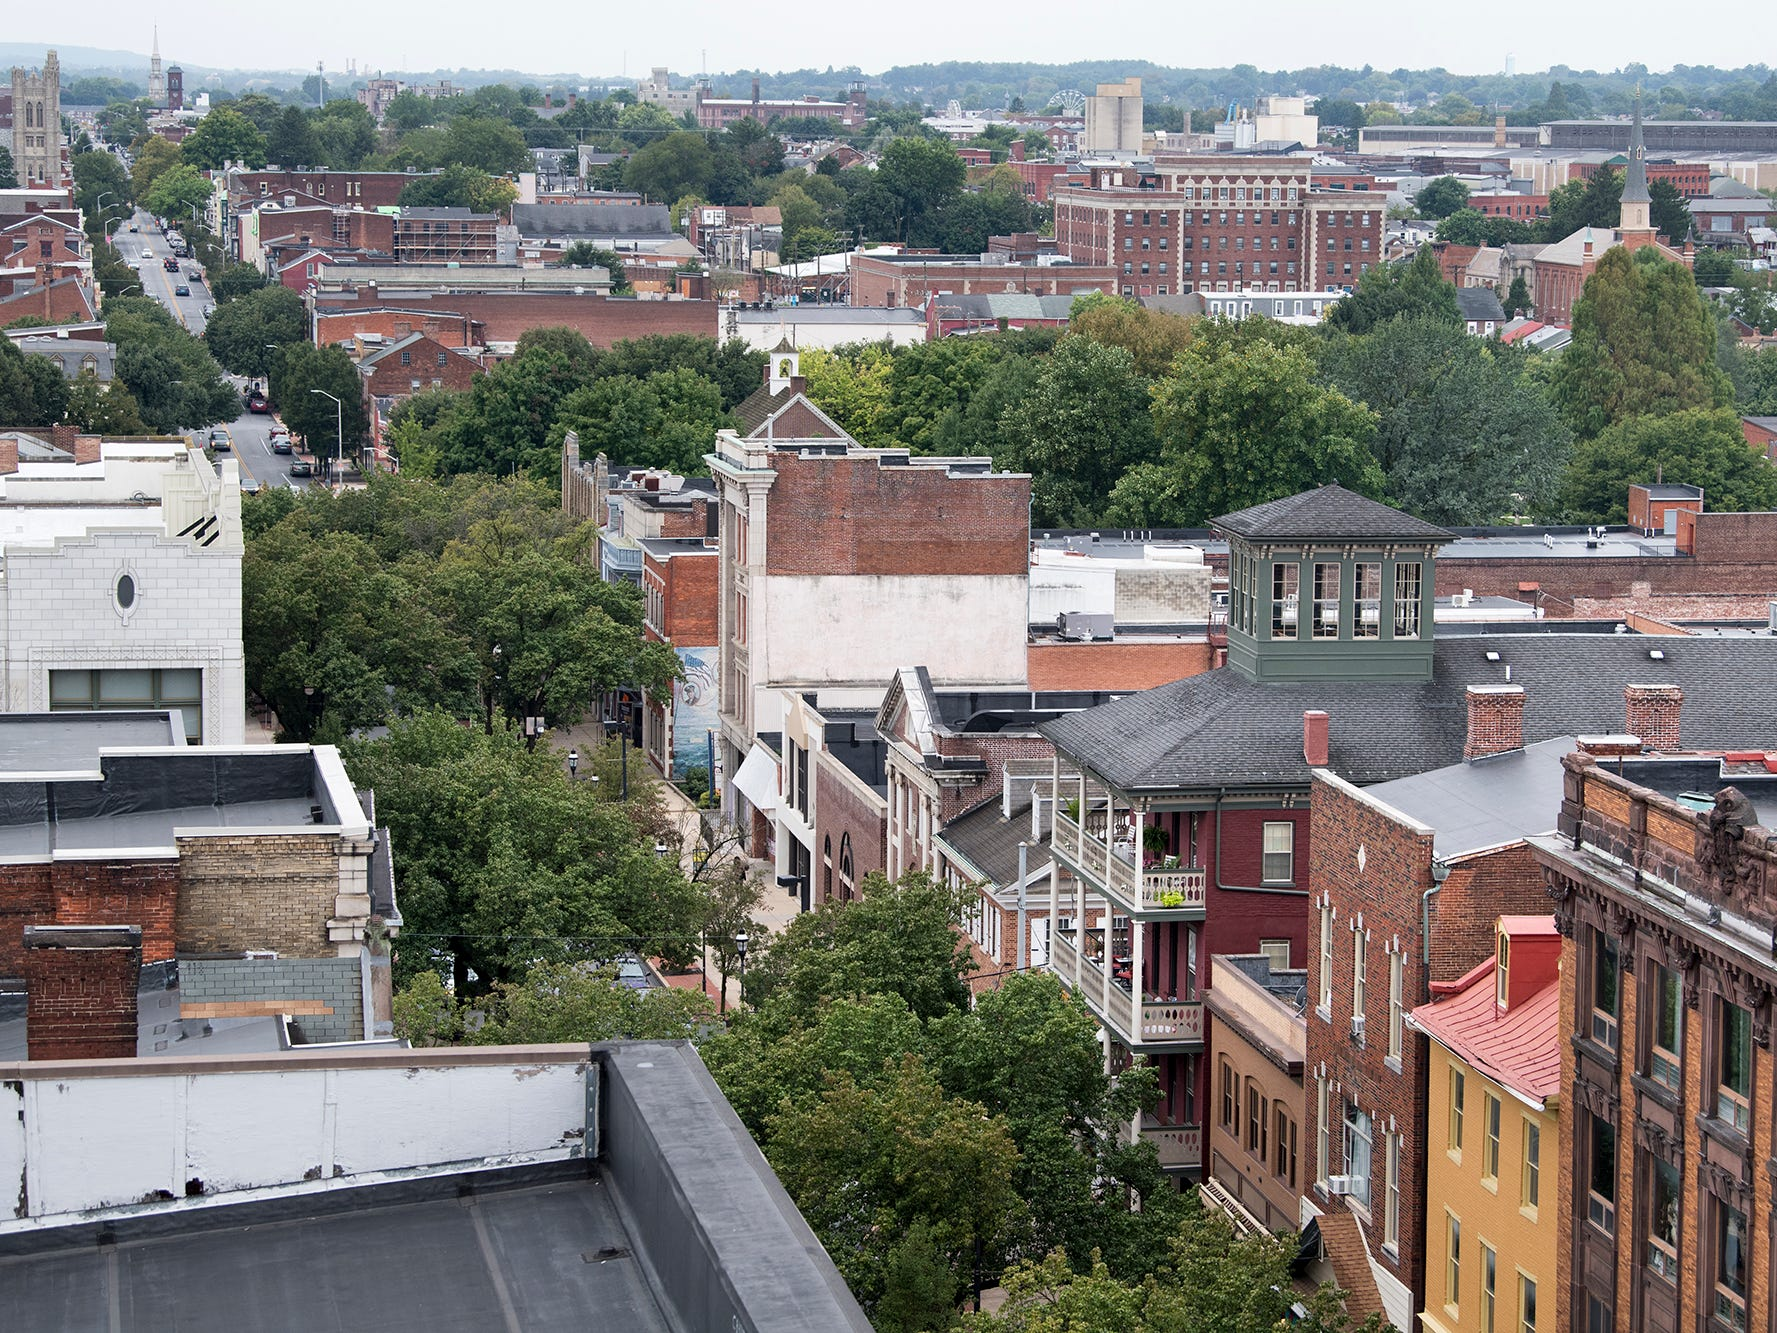 Looking west on West Market Street from the roof of the Rupp-Schmidt Building at 2 West Market Street in York.